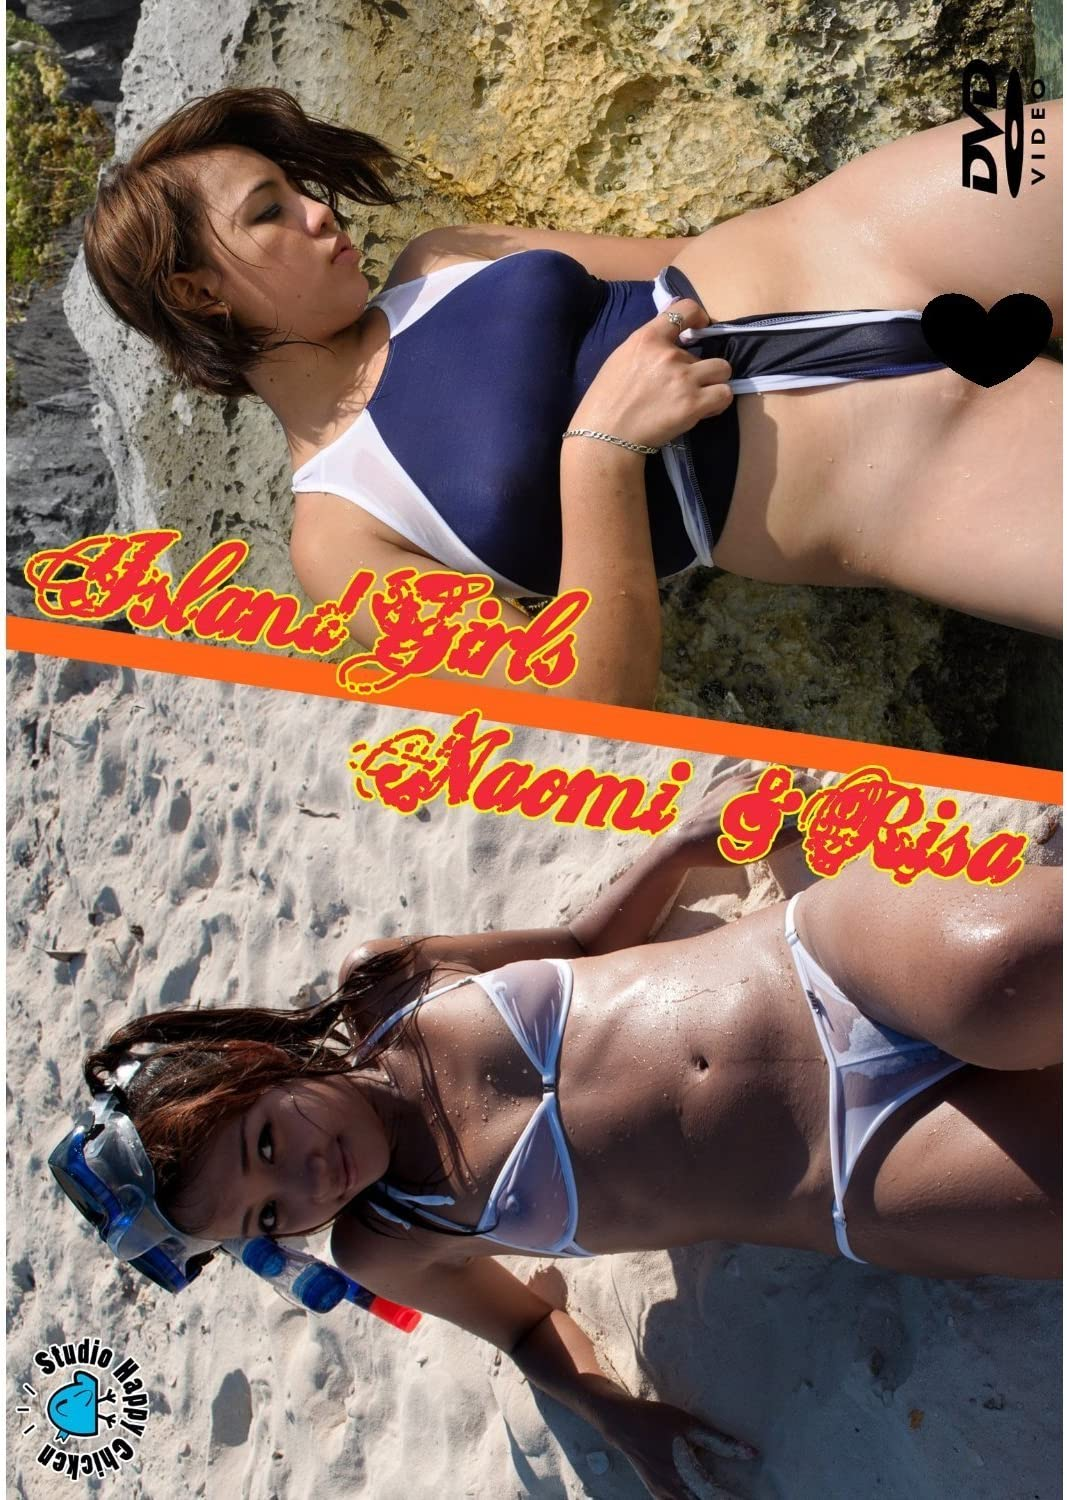 Island Girls Naomi And Risa Amazon Fr Dvd Blu Ray